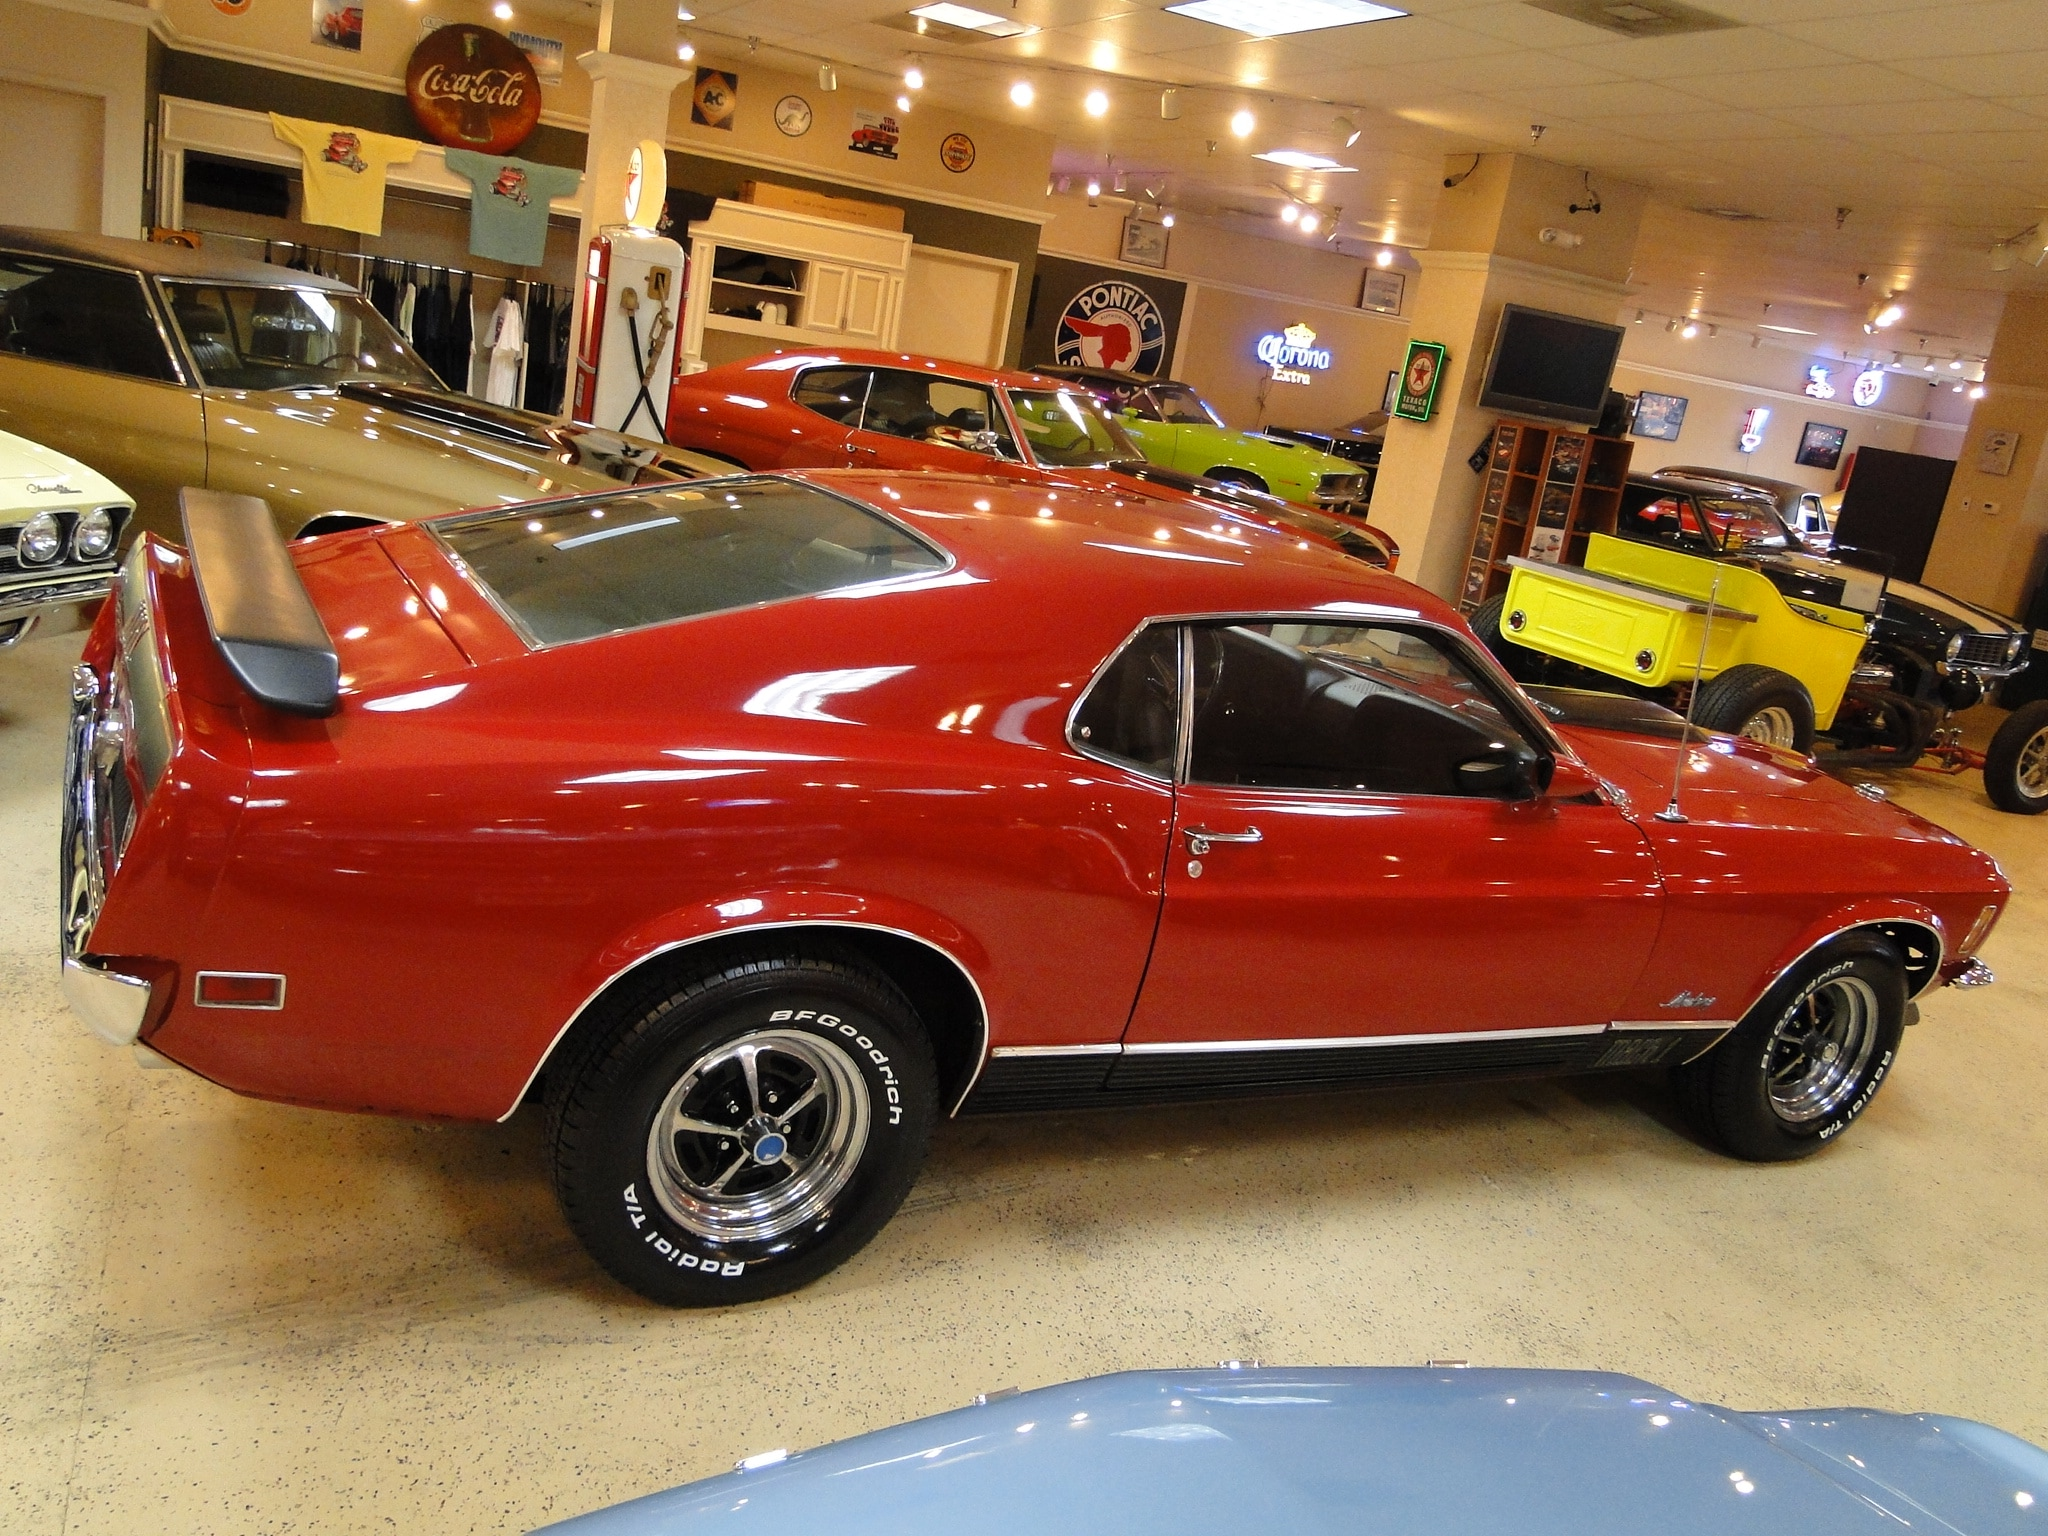 Ford Mustang Mach 1 for Sale on